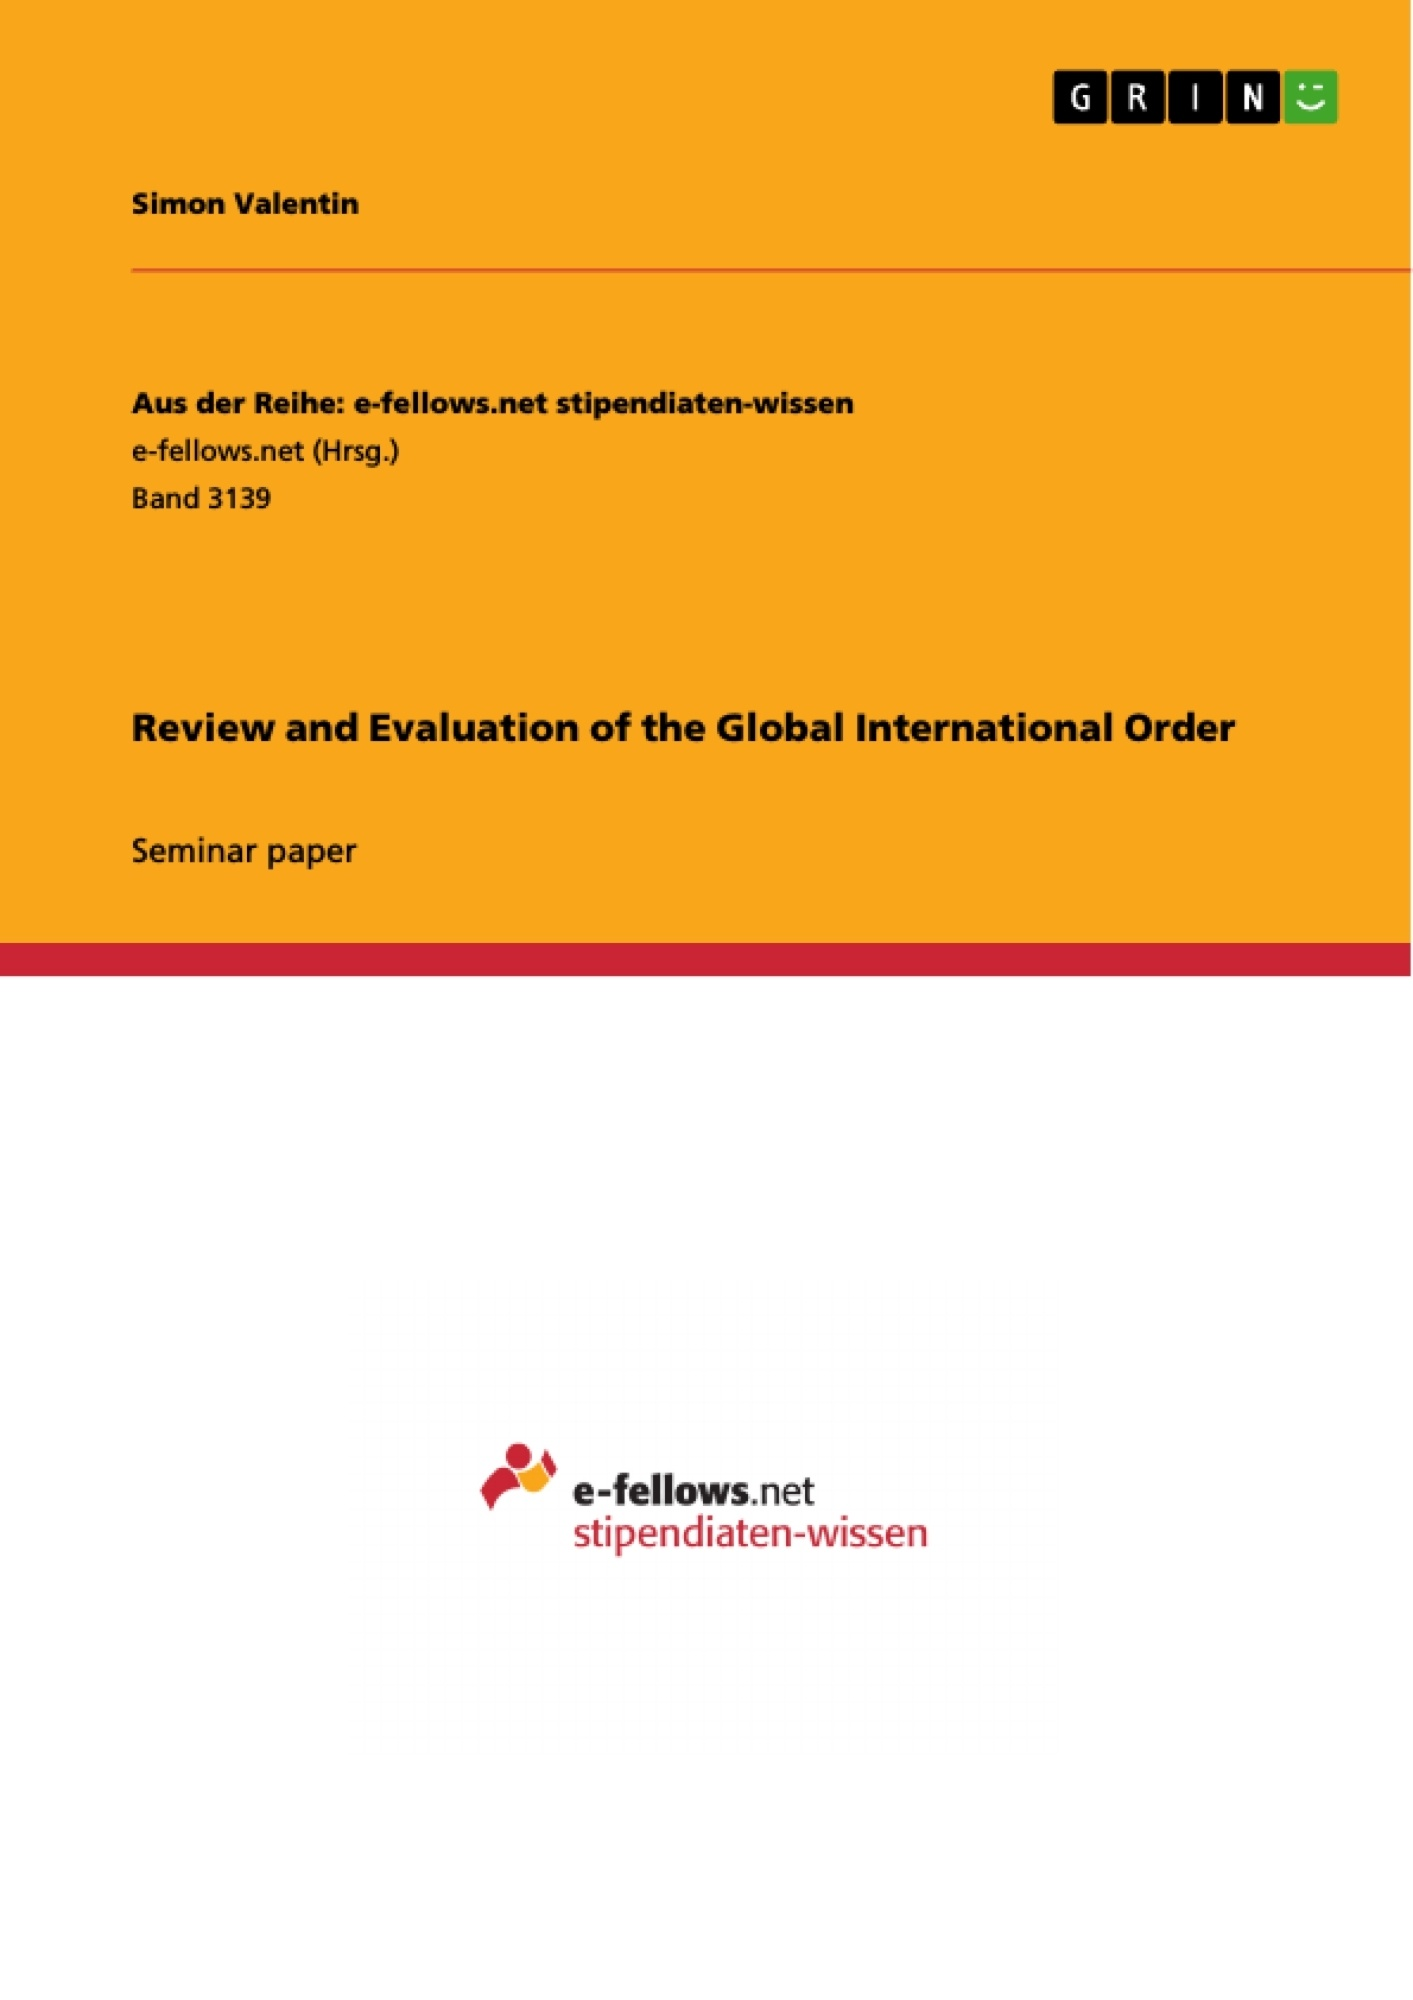 Title: Review and Evaluation of the Global International Order